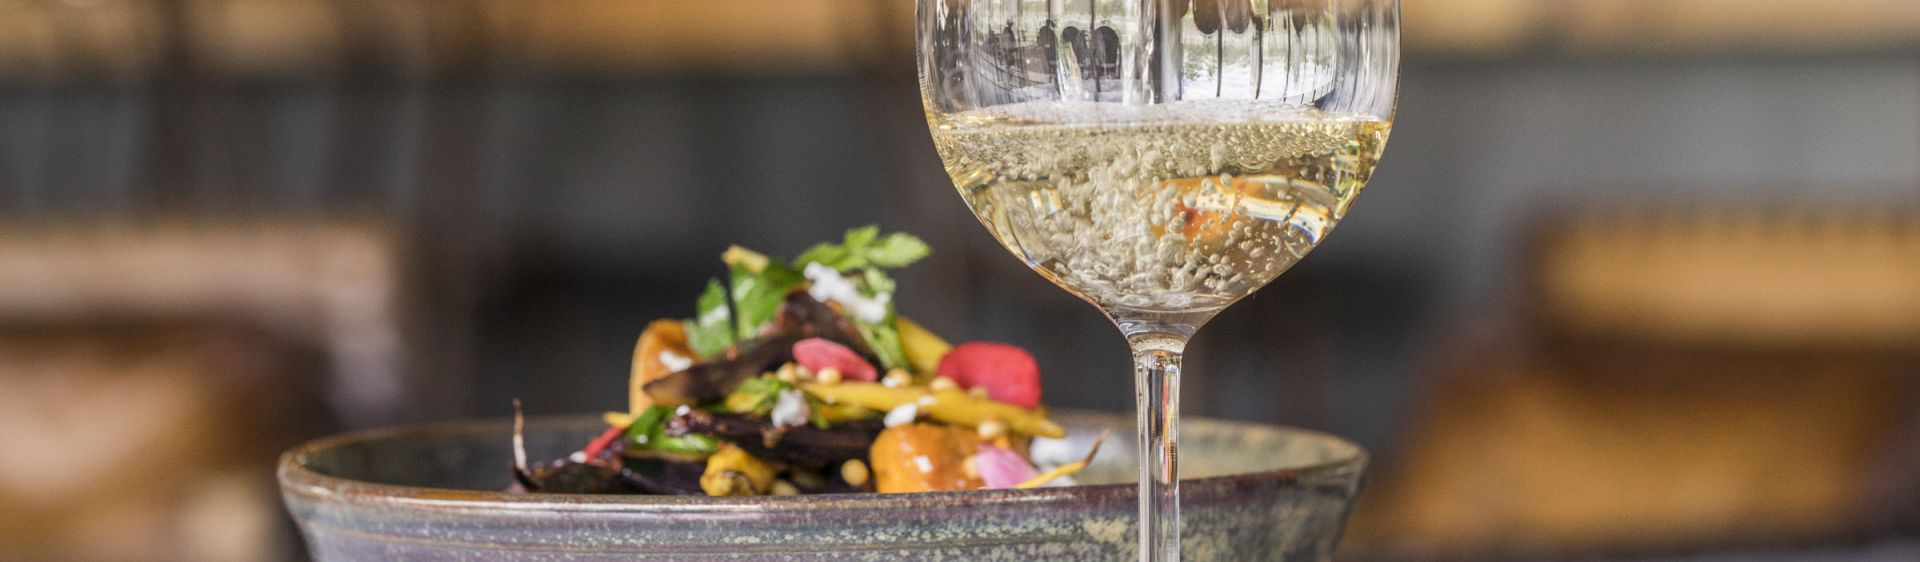 Salad and wine available at Bendooley Estate in Berrima